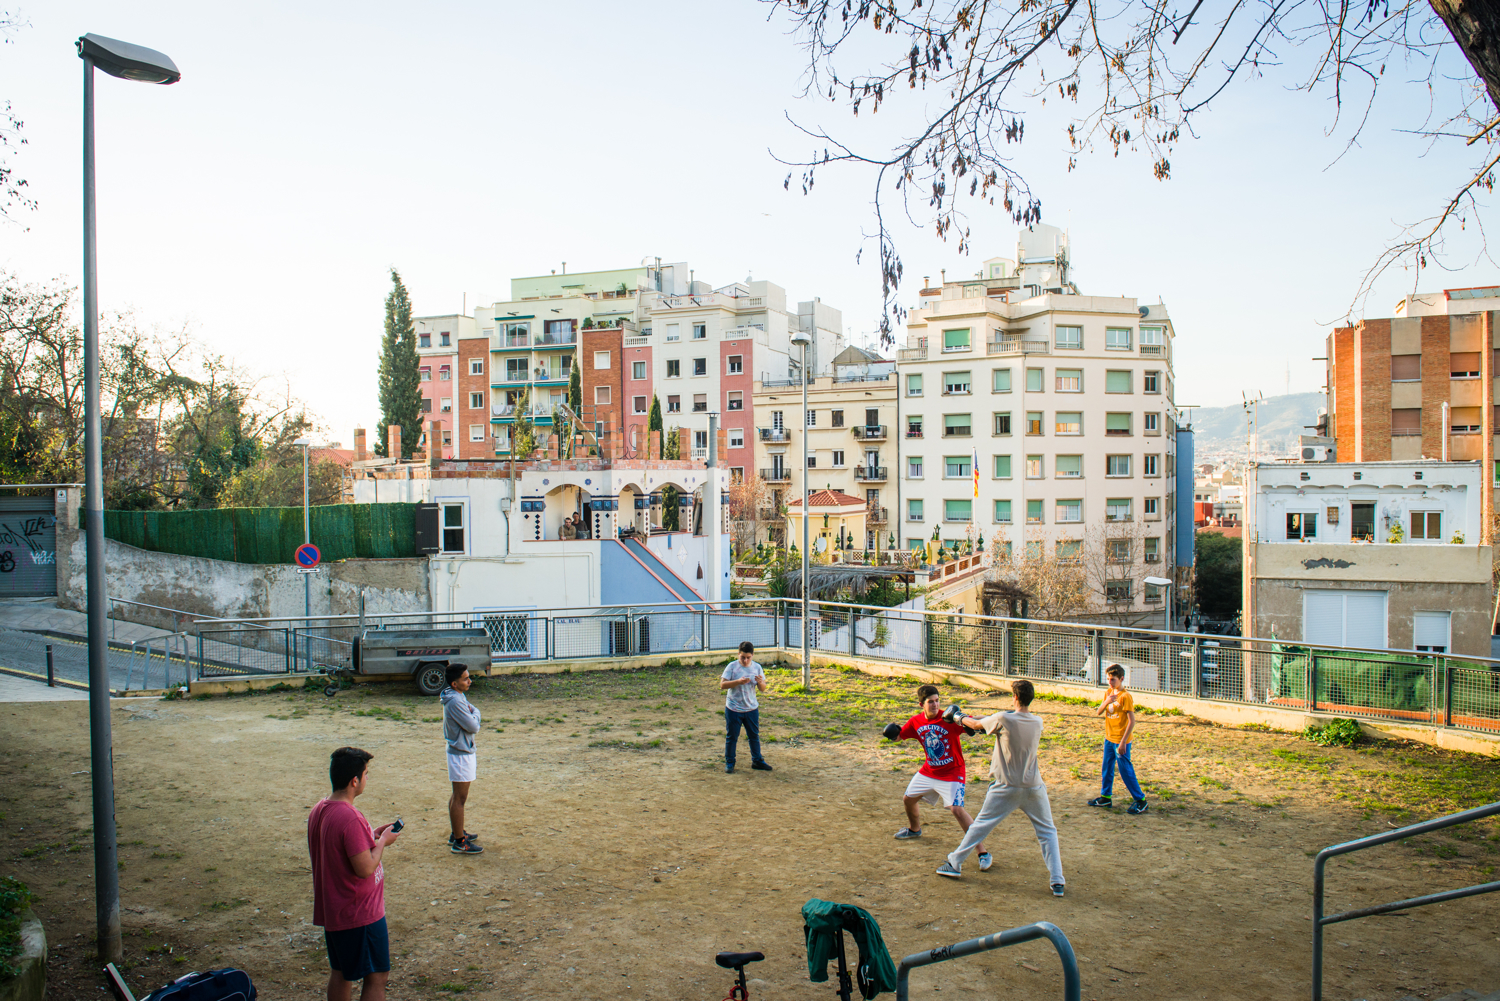 Spain, Barcelona. A group of boys practice boxing in the El Poble-sec neighborhood of Barcelona. The neighborhood has long been a working class and residential haven in central Barcelona, but in recent years has increasingly become a destination for young tourists.